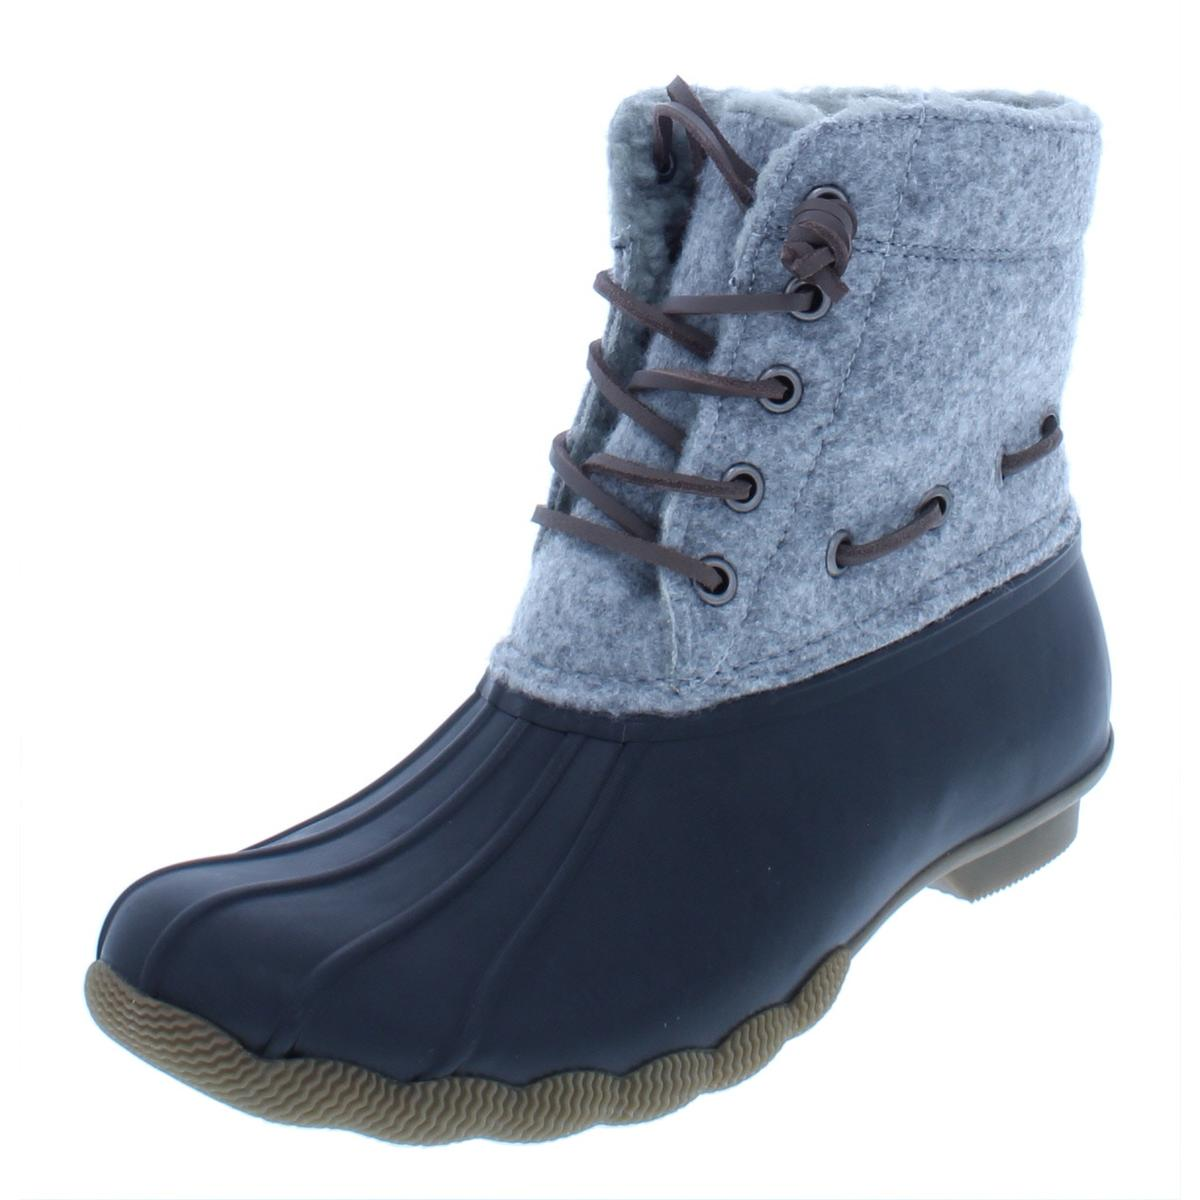 53941044794 Details about Steve Madden Womens Torrent Gray Ankle Rain Boots Shoes 6  Medium (B